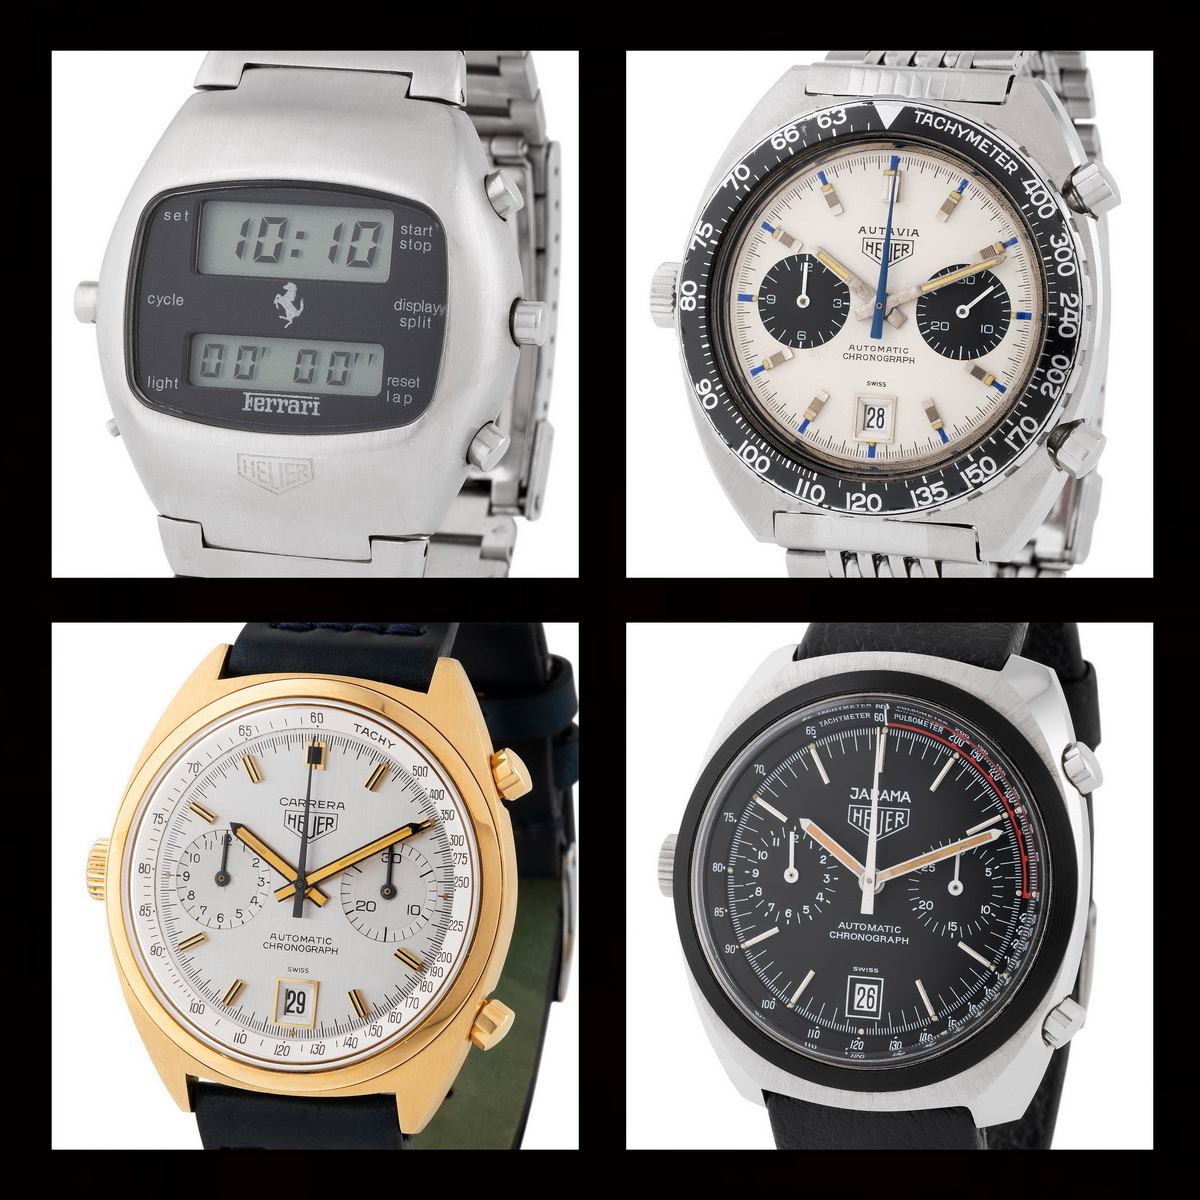 Auction Watch – Monaco Legend Group Selling 24 Heuer Chronographs, October 31, 2020